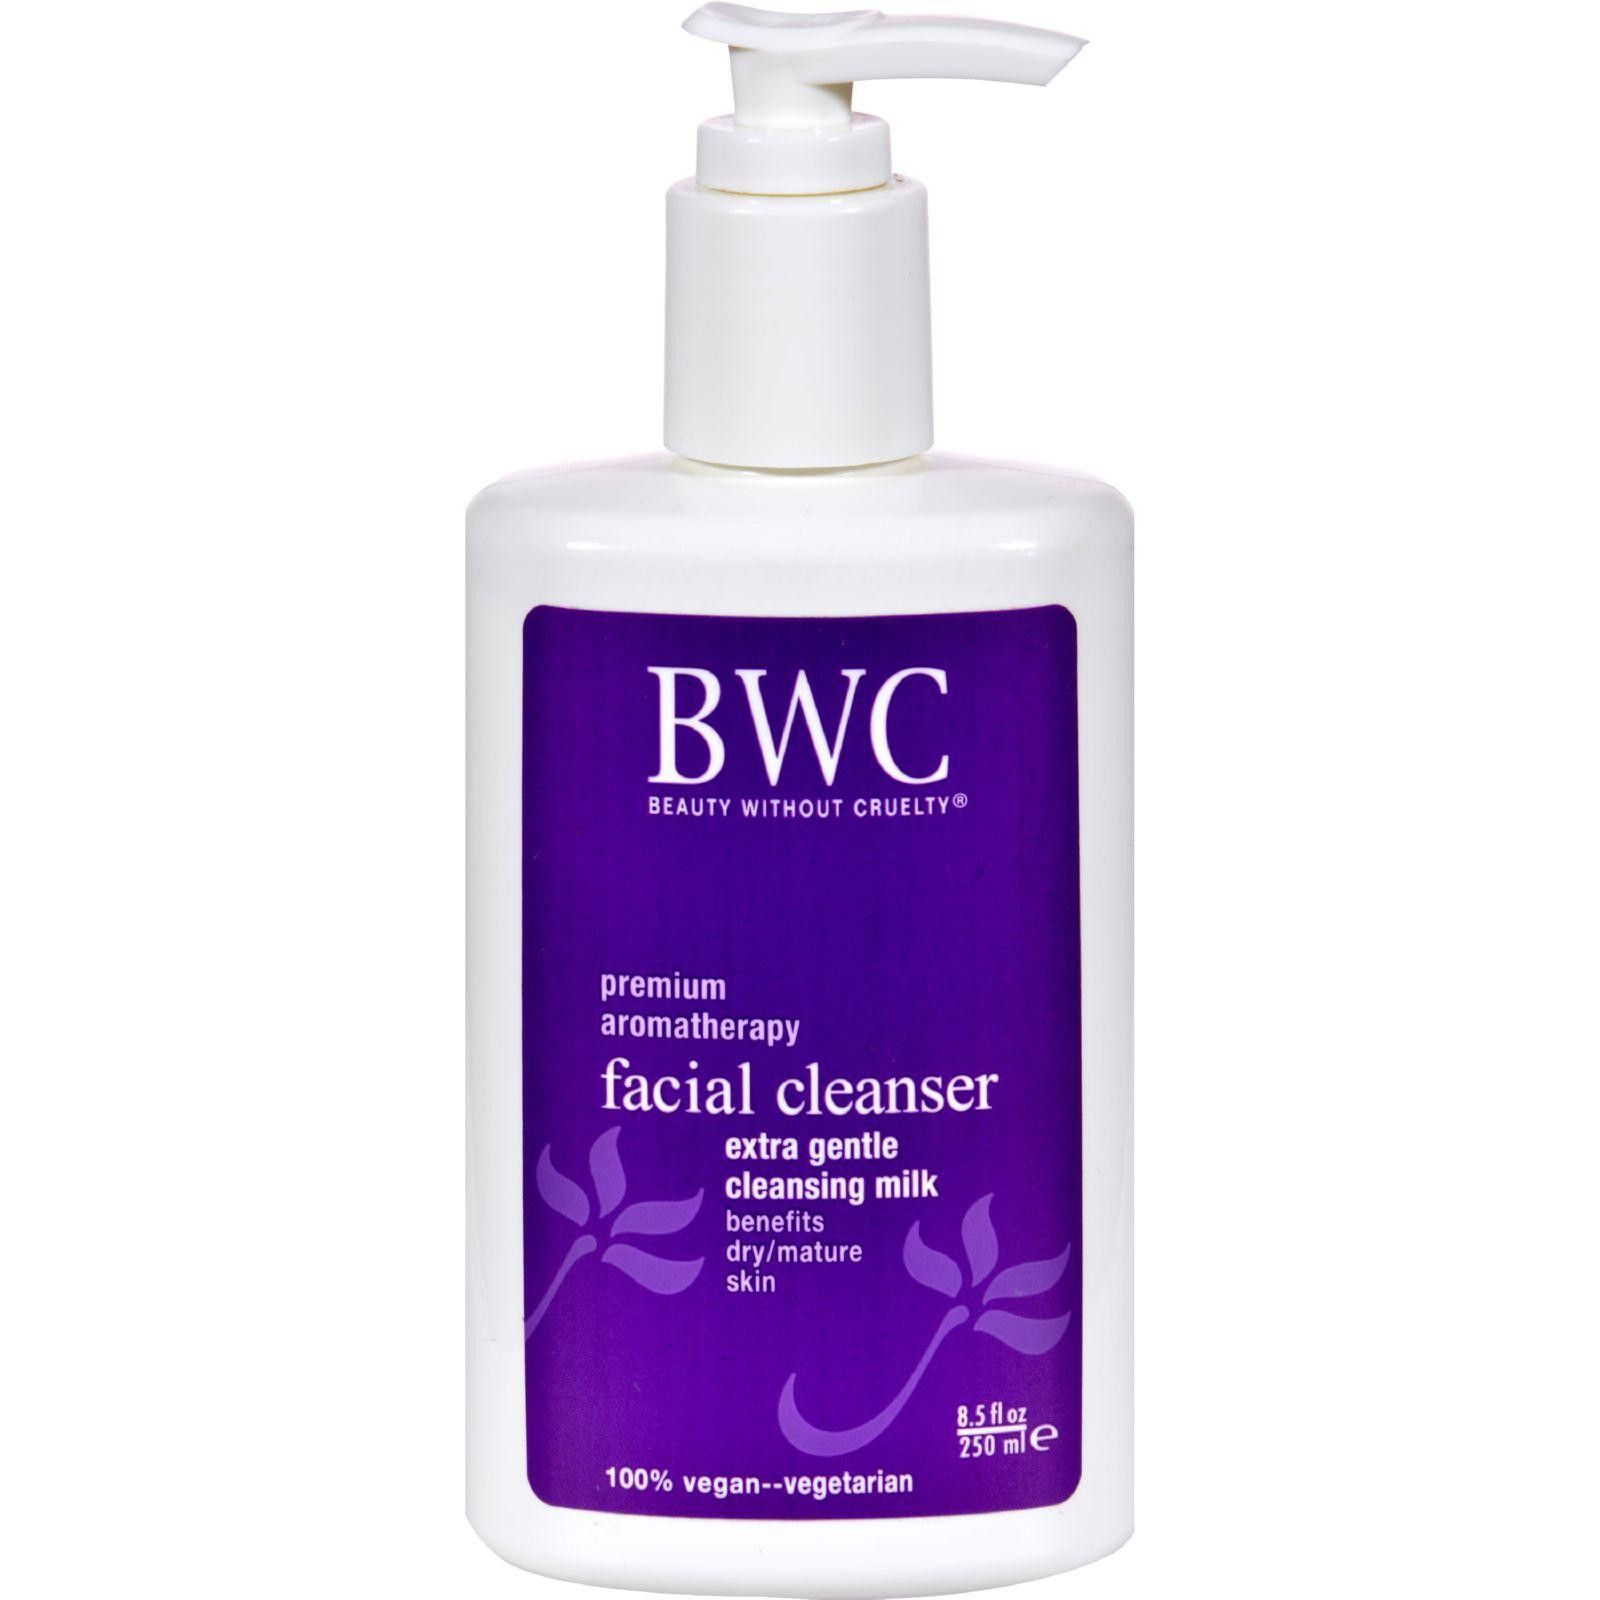 Facial Cleanser-Herbal Cream Beauty Without Cruelty 8.5 oz Cream Face Up Roller Cellulose